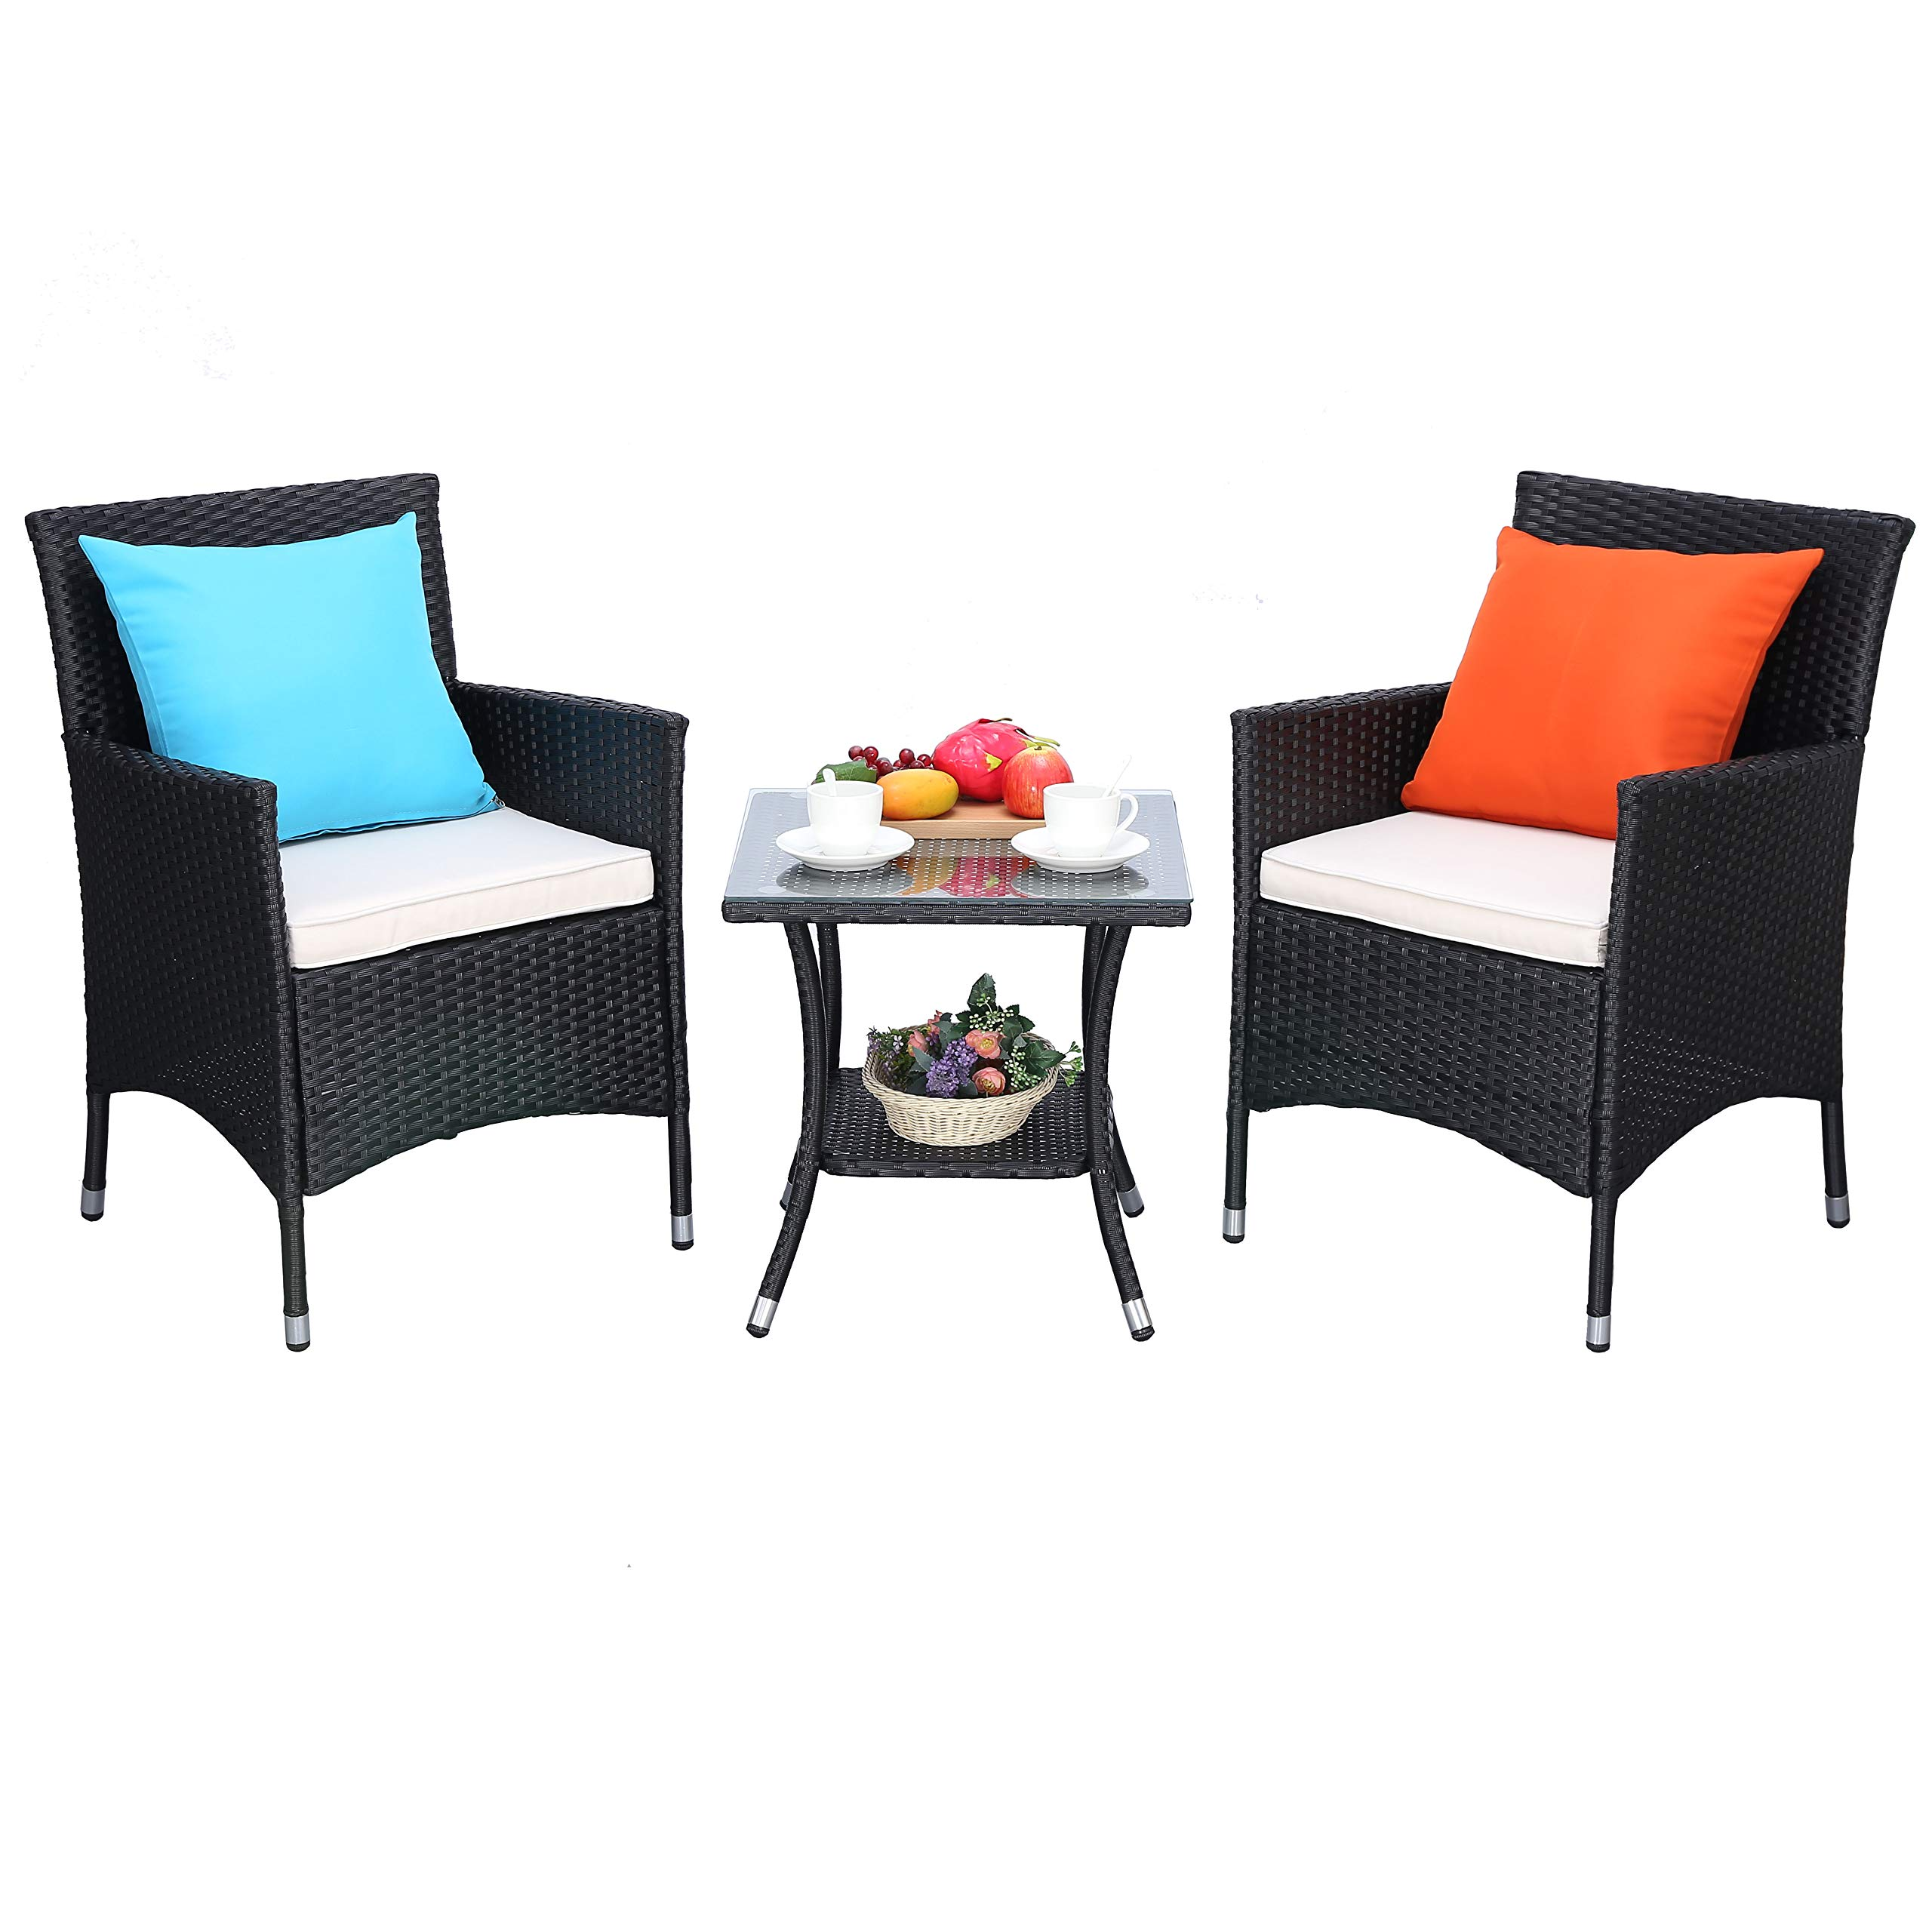 Do4U 3 Pieces Patio Furniture Set Outdoor Wicker Conversation Set Cushioned PE Wicker Bistro Set Rattan Chairs with Coffee Table | Porch, Backyard, Pool Garden | Dining Chairs (961-BLK-BEG)